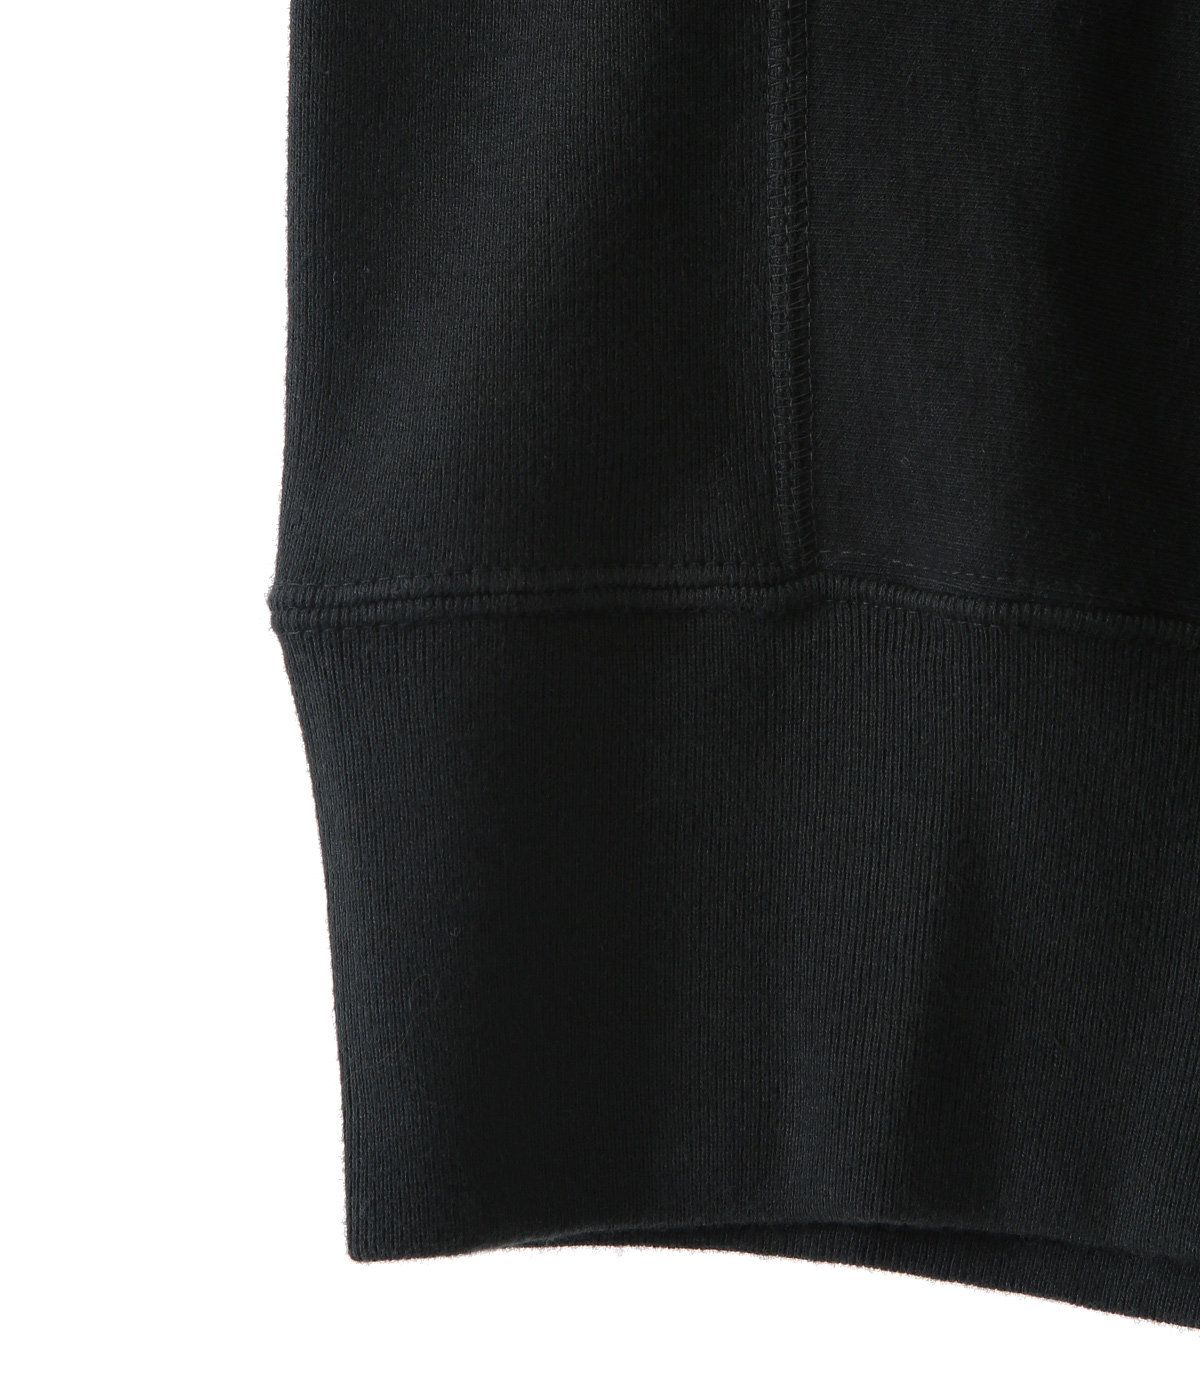 SUPER MILLED SWEAT P/O